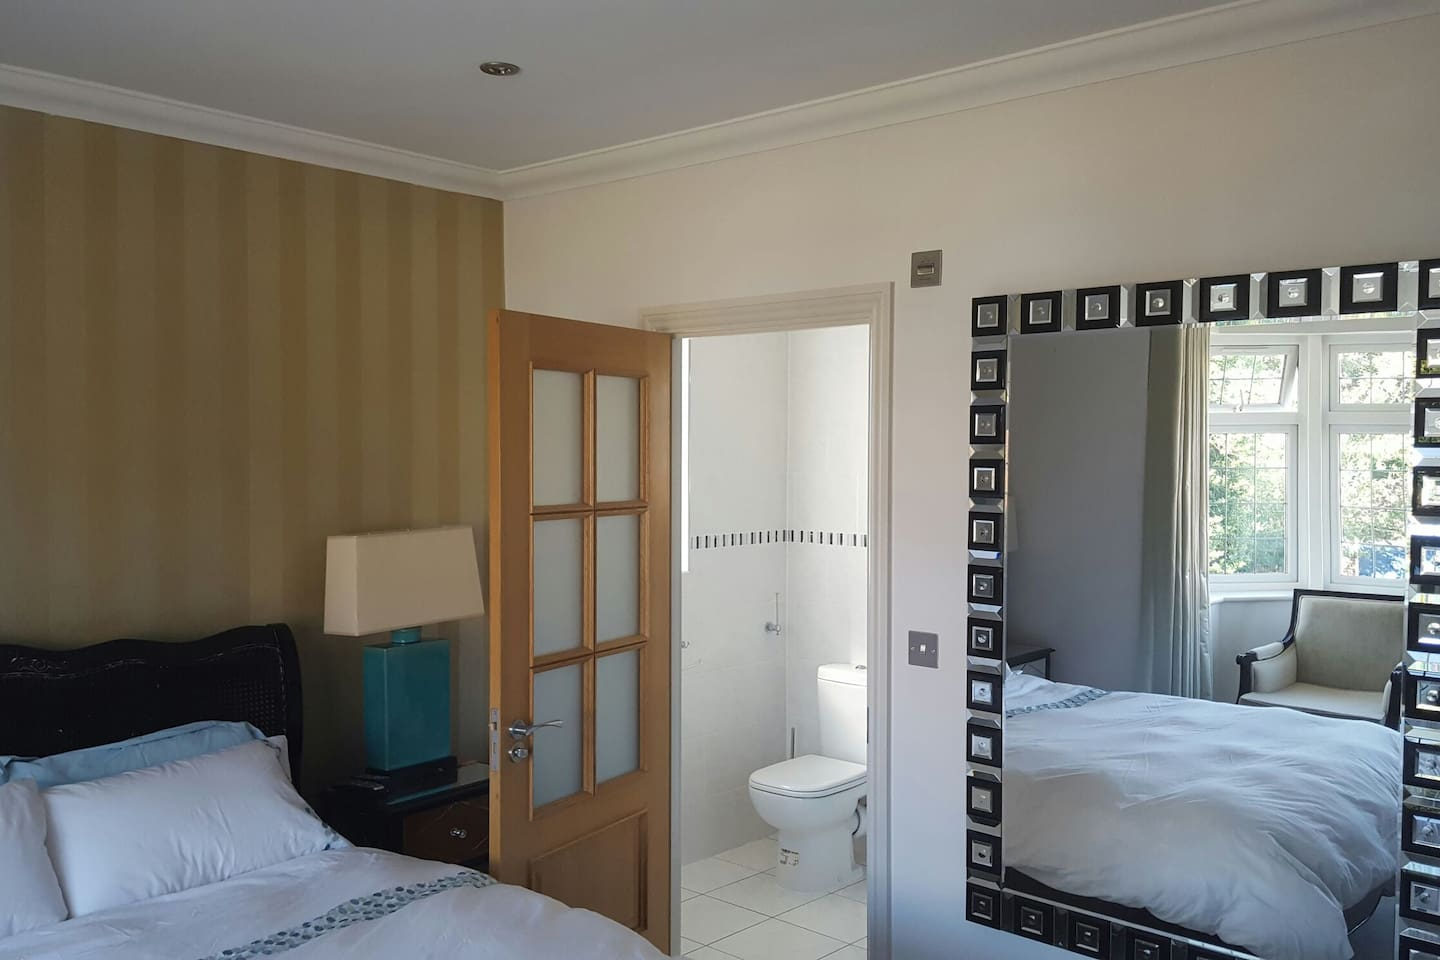 Luxury Kingsize Room with Ensuite, Large Mirror